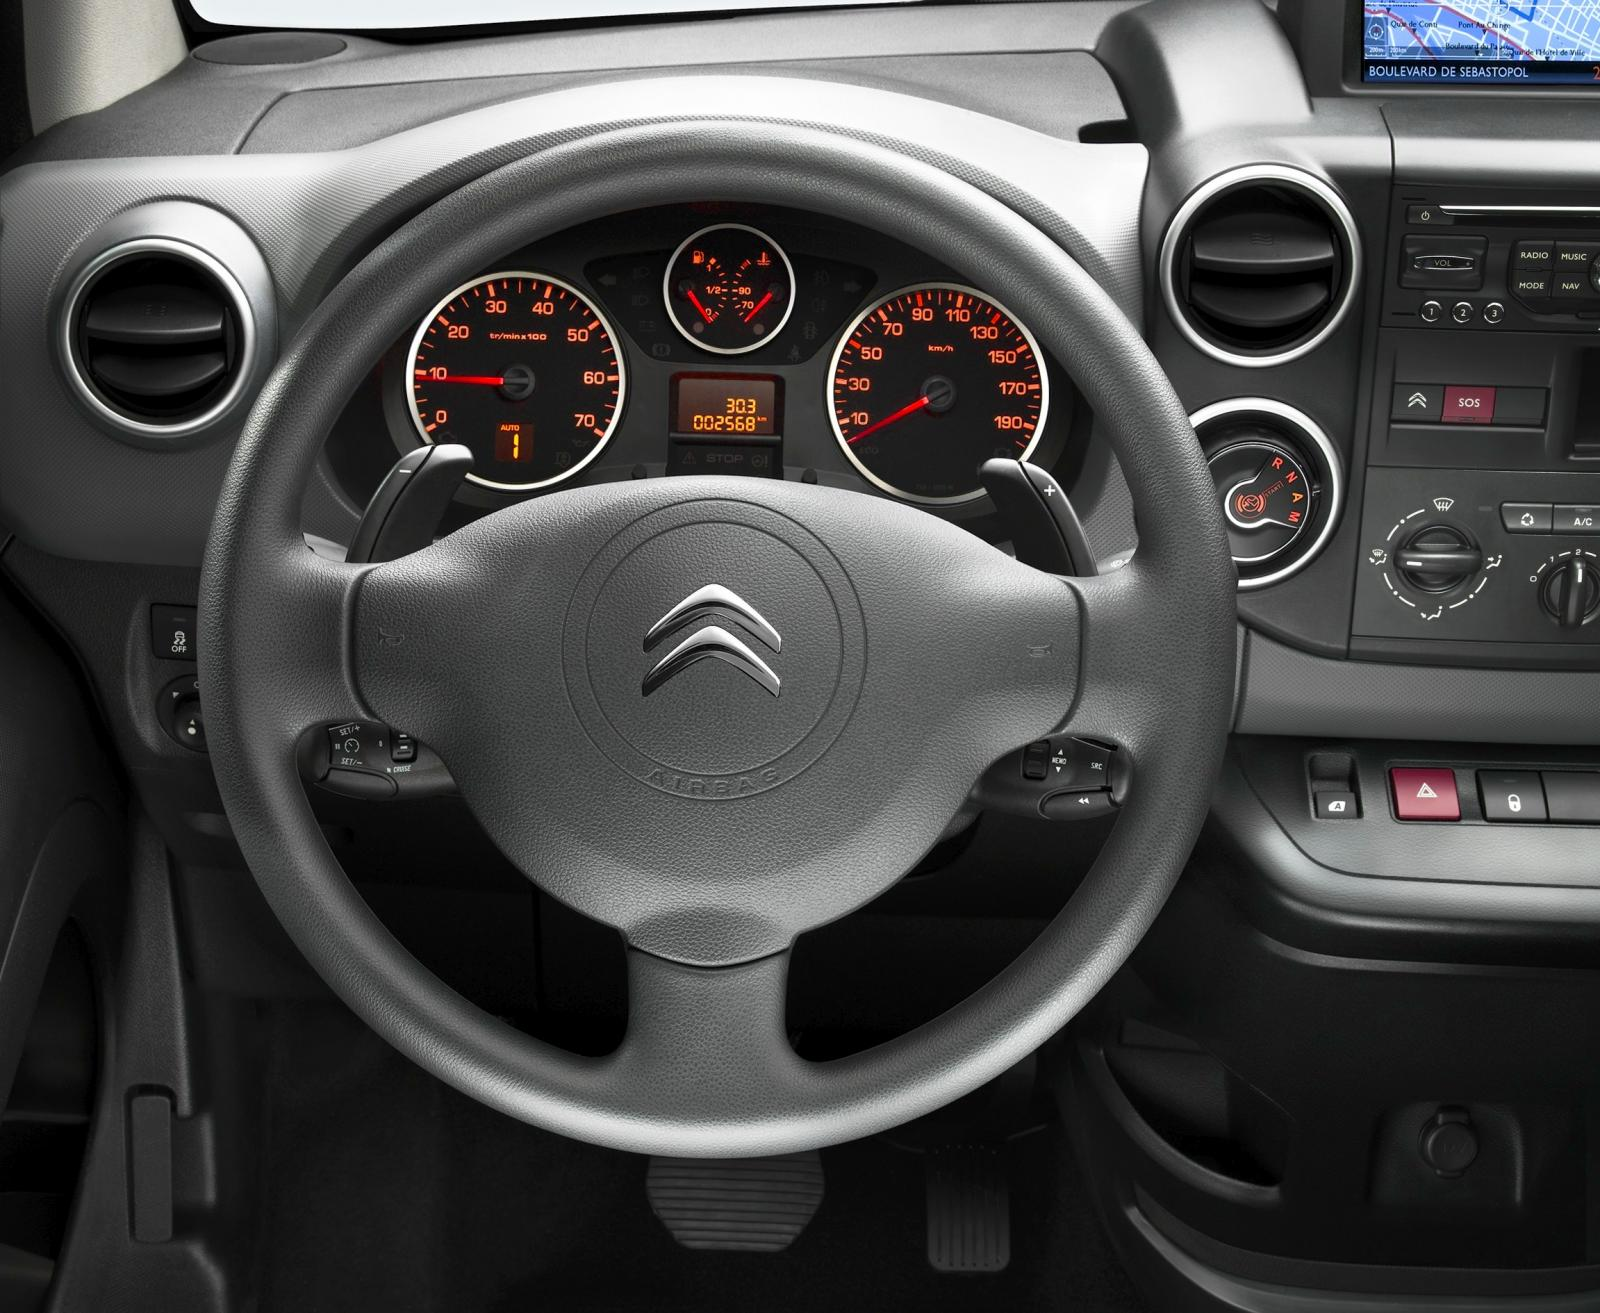 Berlingo van 2012 steering wheel